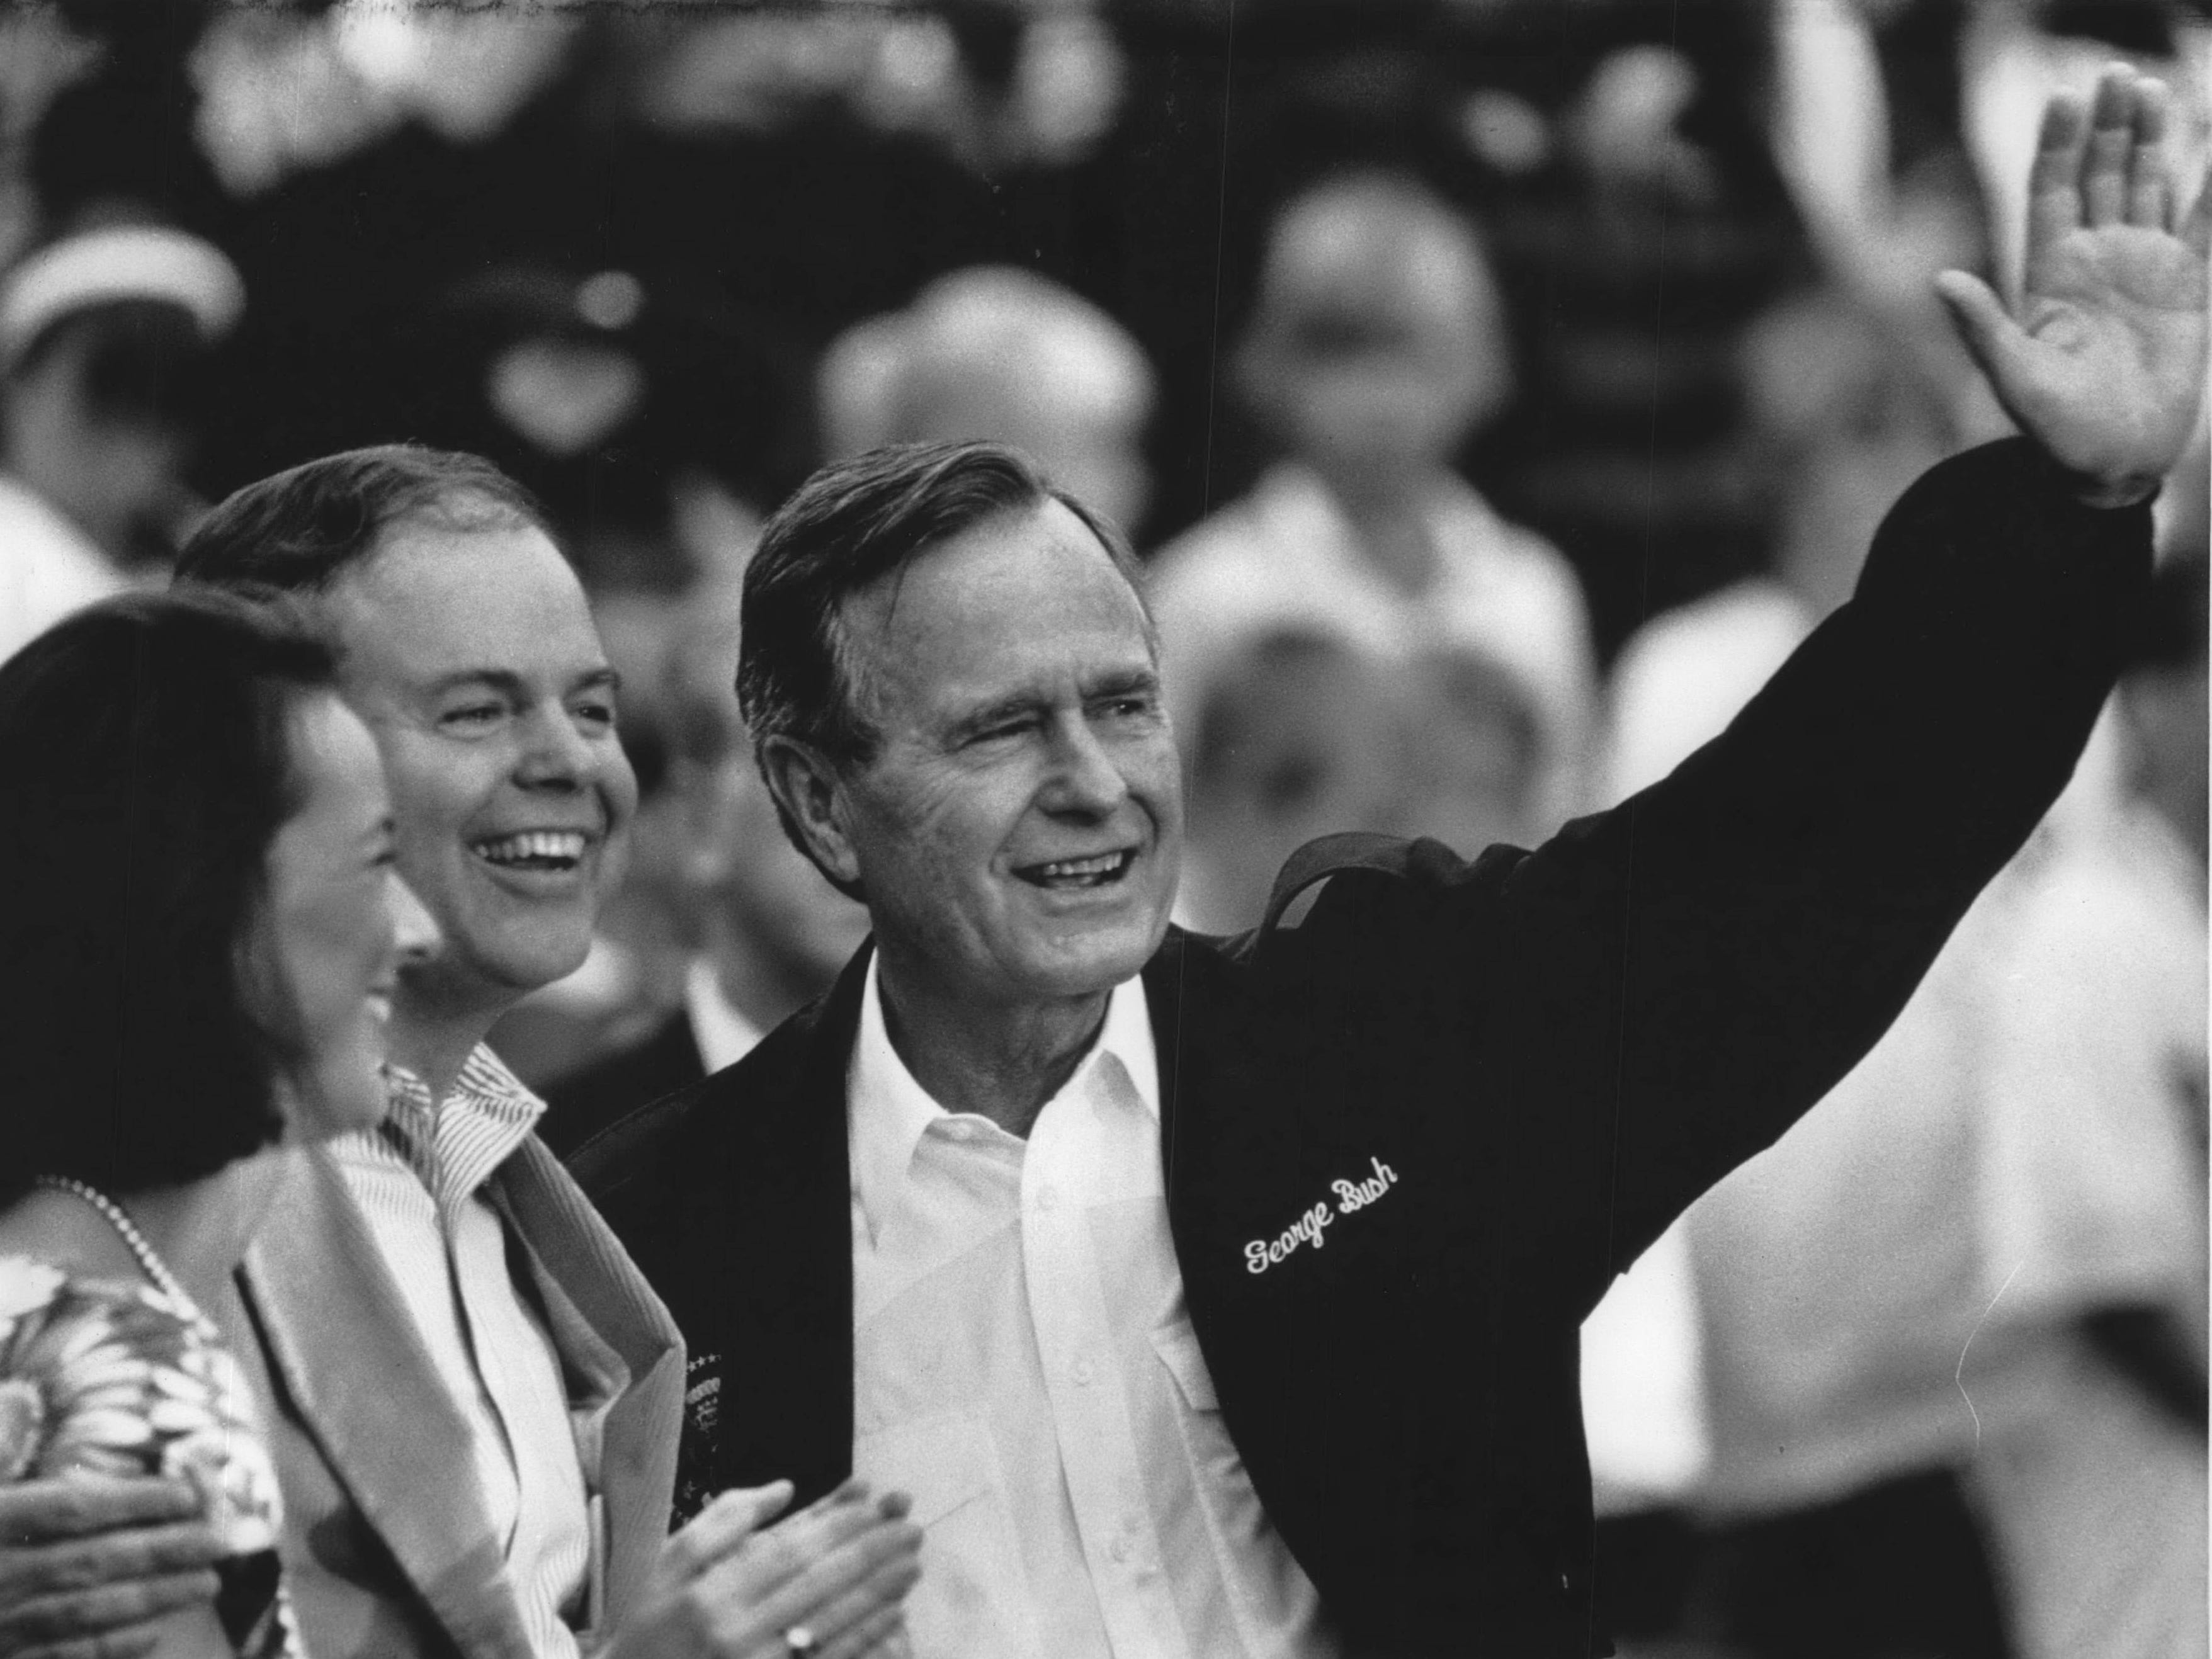 President George Bush greets the crowd with U.S. Sen. Bob Kasten (R-Wisconsin) and Kasten's wife, Eva, during a Waukesha County appearance in 1992.